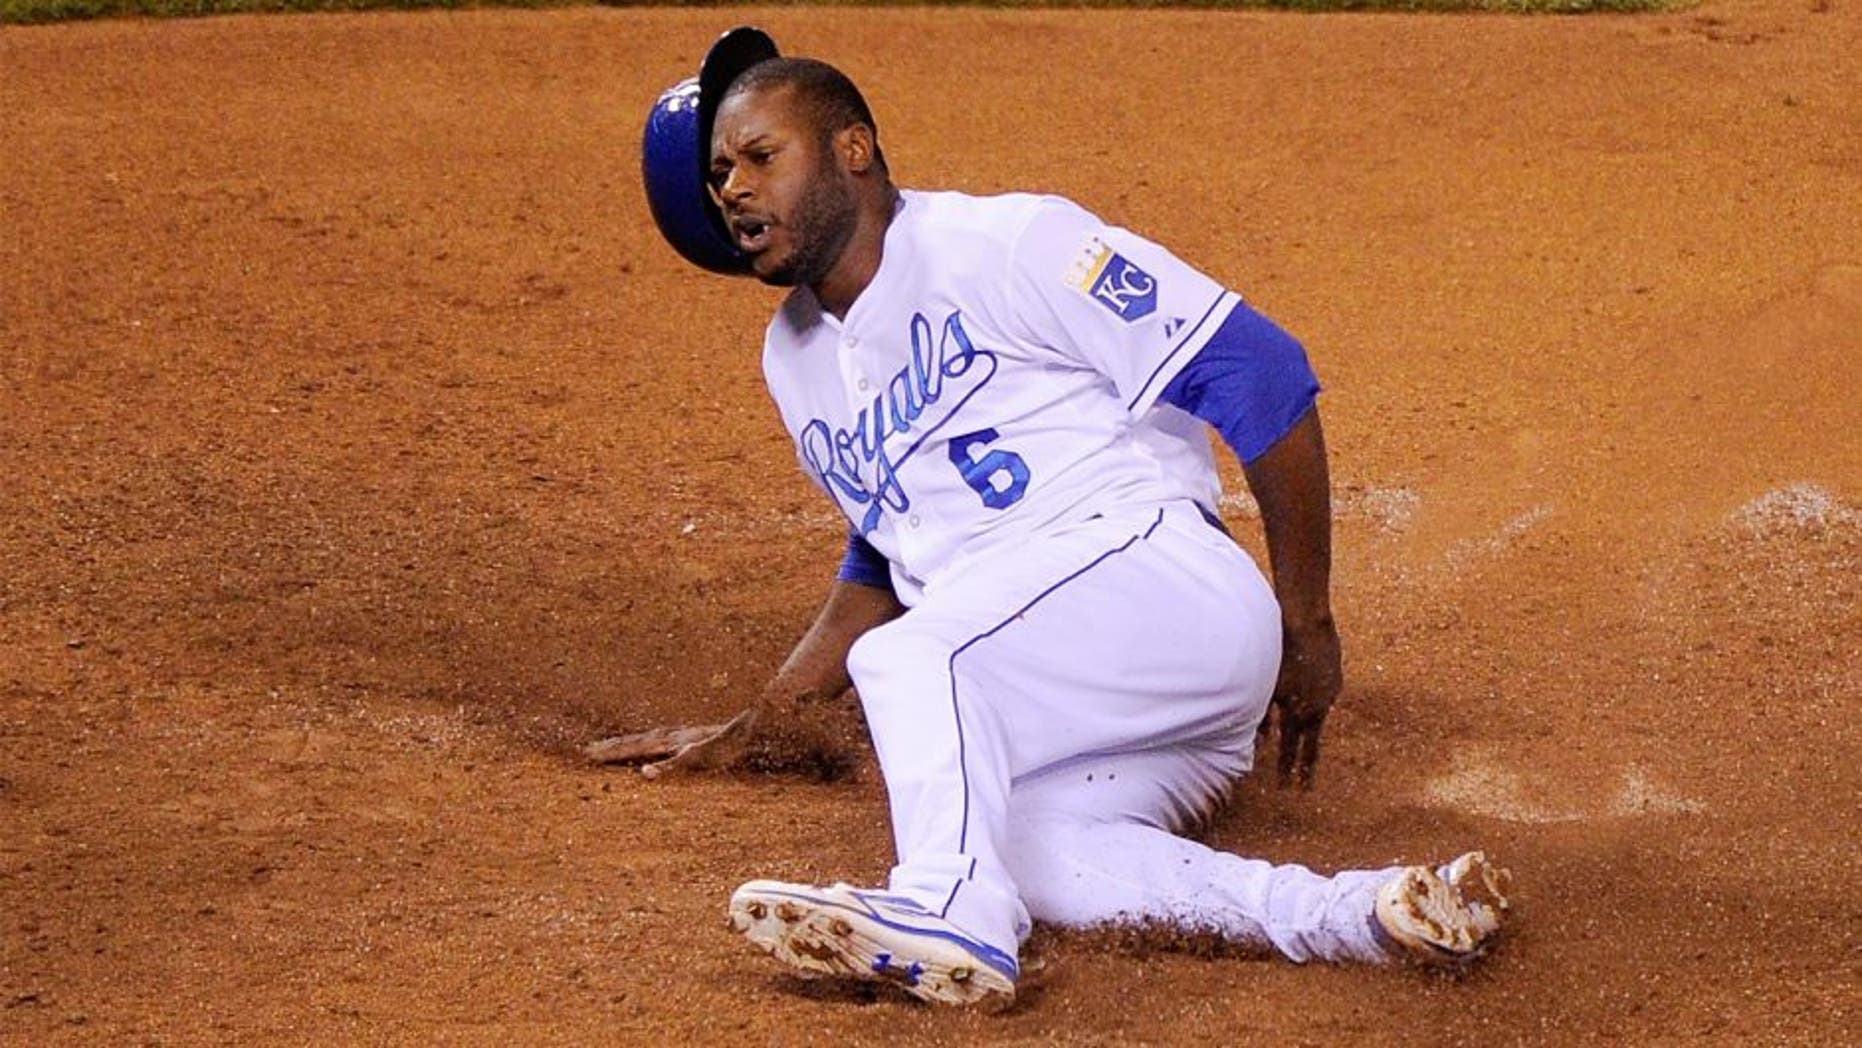 KANSAS CITY, MO - OCTOBER 23: Lorenzo Cain #6 of the Kansas City Royals slides safely to score in the eighth inning against the Toronto Blue Jays in game six of the 2015 MLB American League Championship Series at Kauffman Stadium on October 23, 2015 in Kansas City, Missouri. (Photo by Ed Zurga/Getty Images)